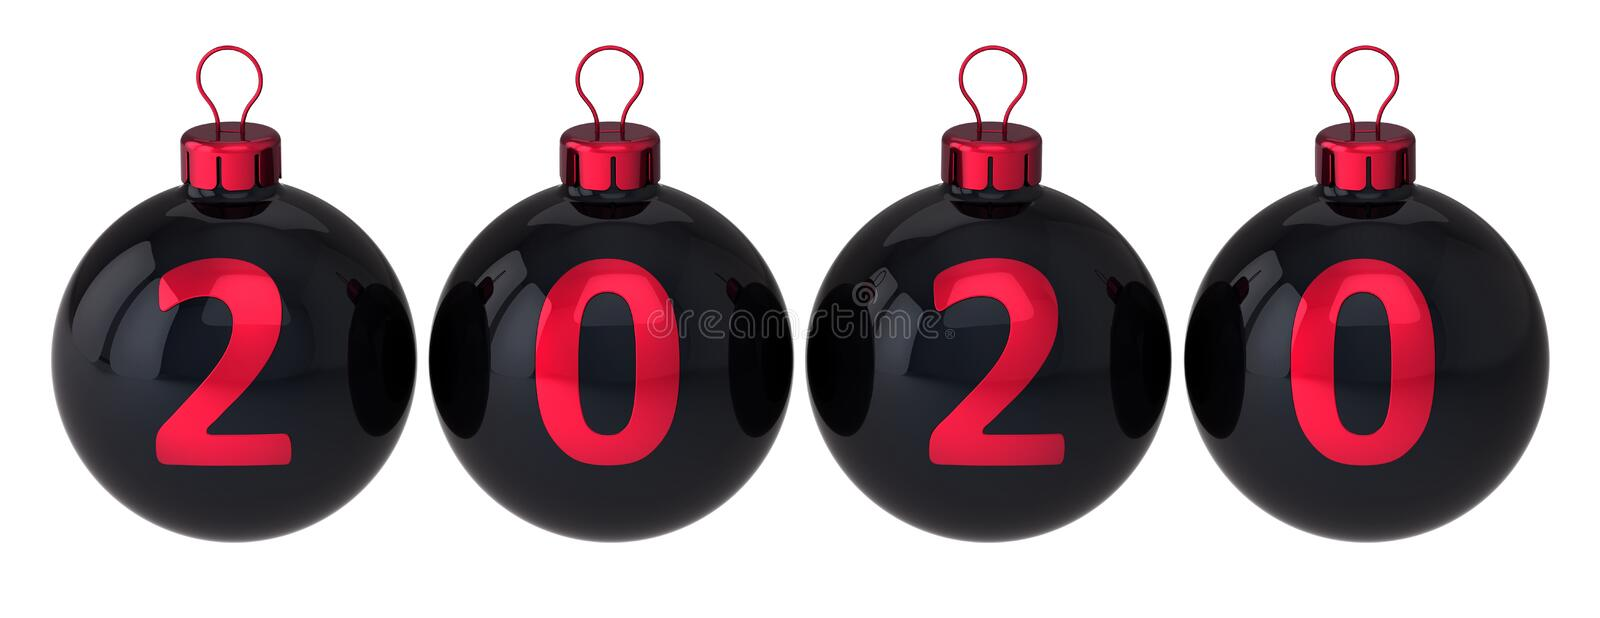 Christmas balls 2020 New Year decoration black with red date royalty free stock image